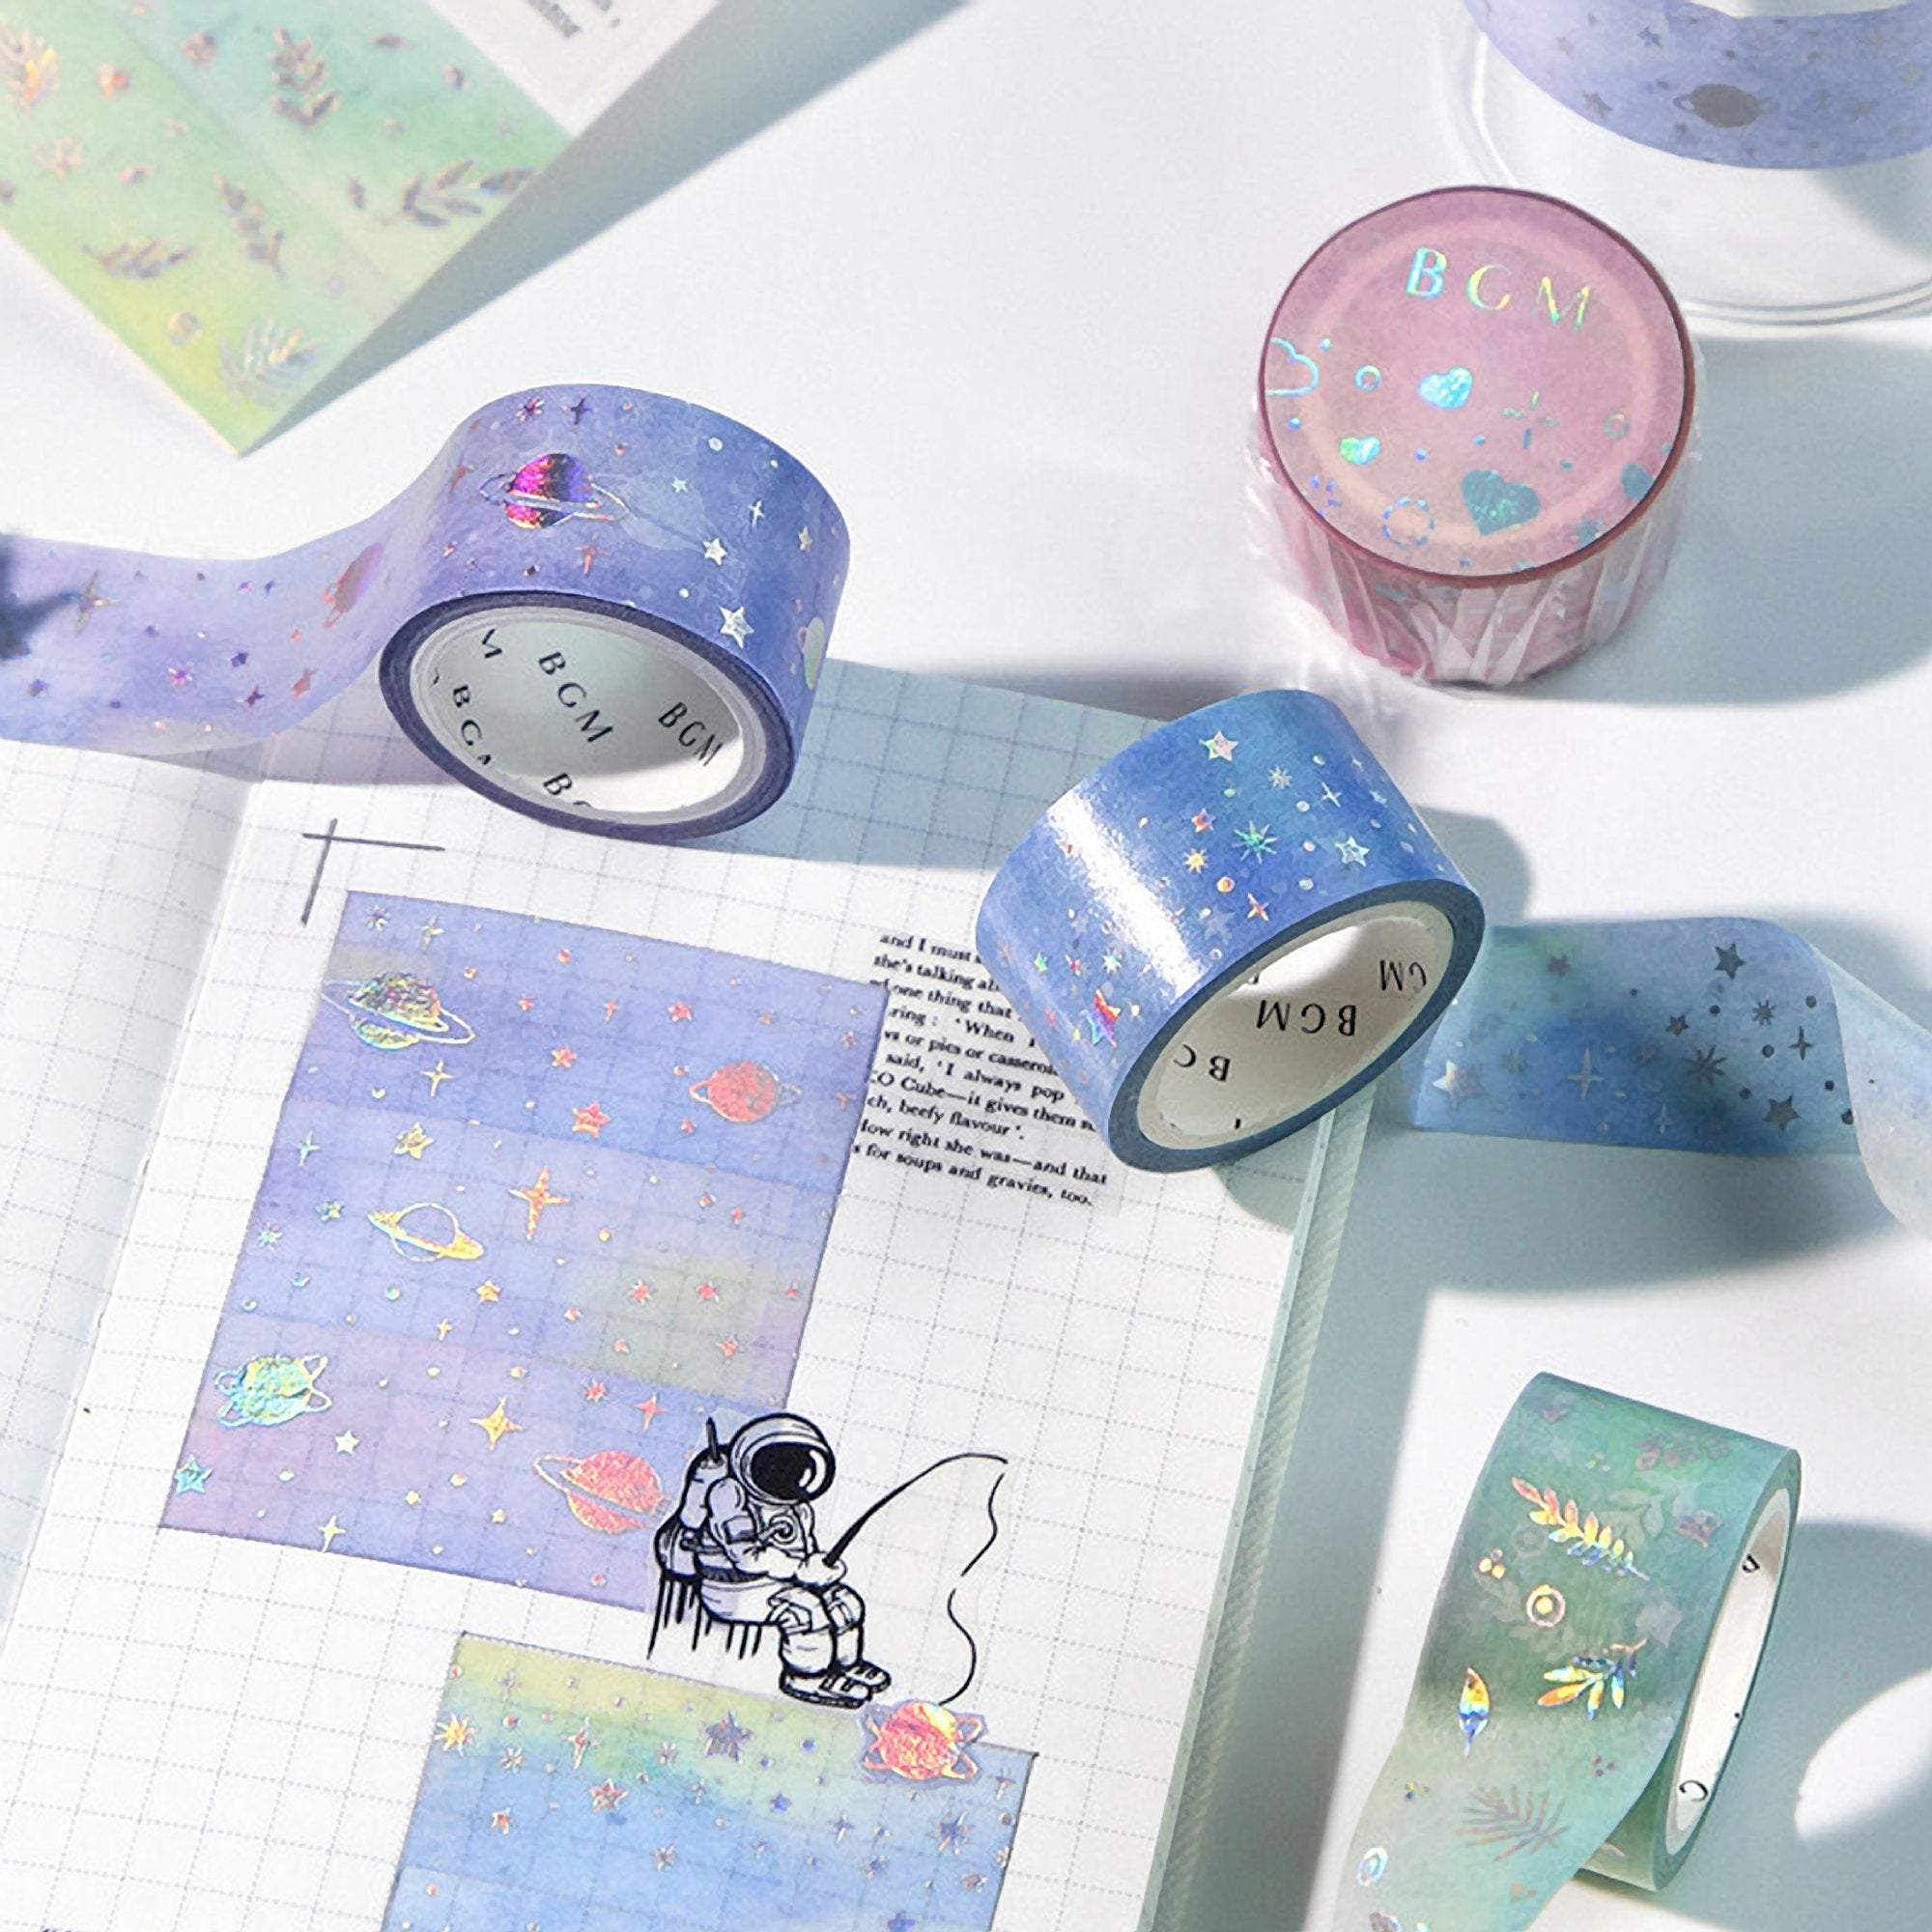 BGM Macaroon Galaxy Green Leaf GOLD FOIL Washi Tape - The Stationery Life!